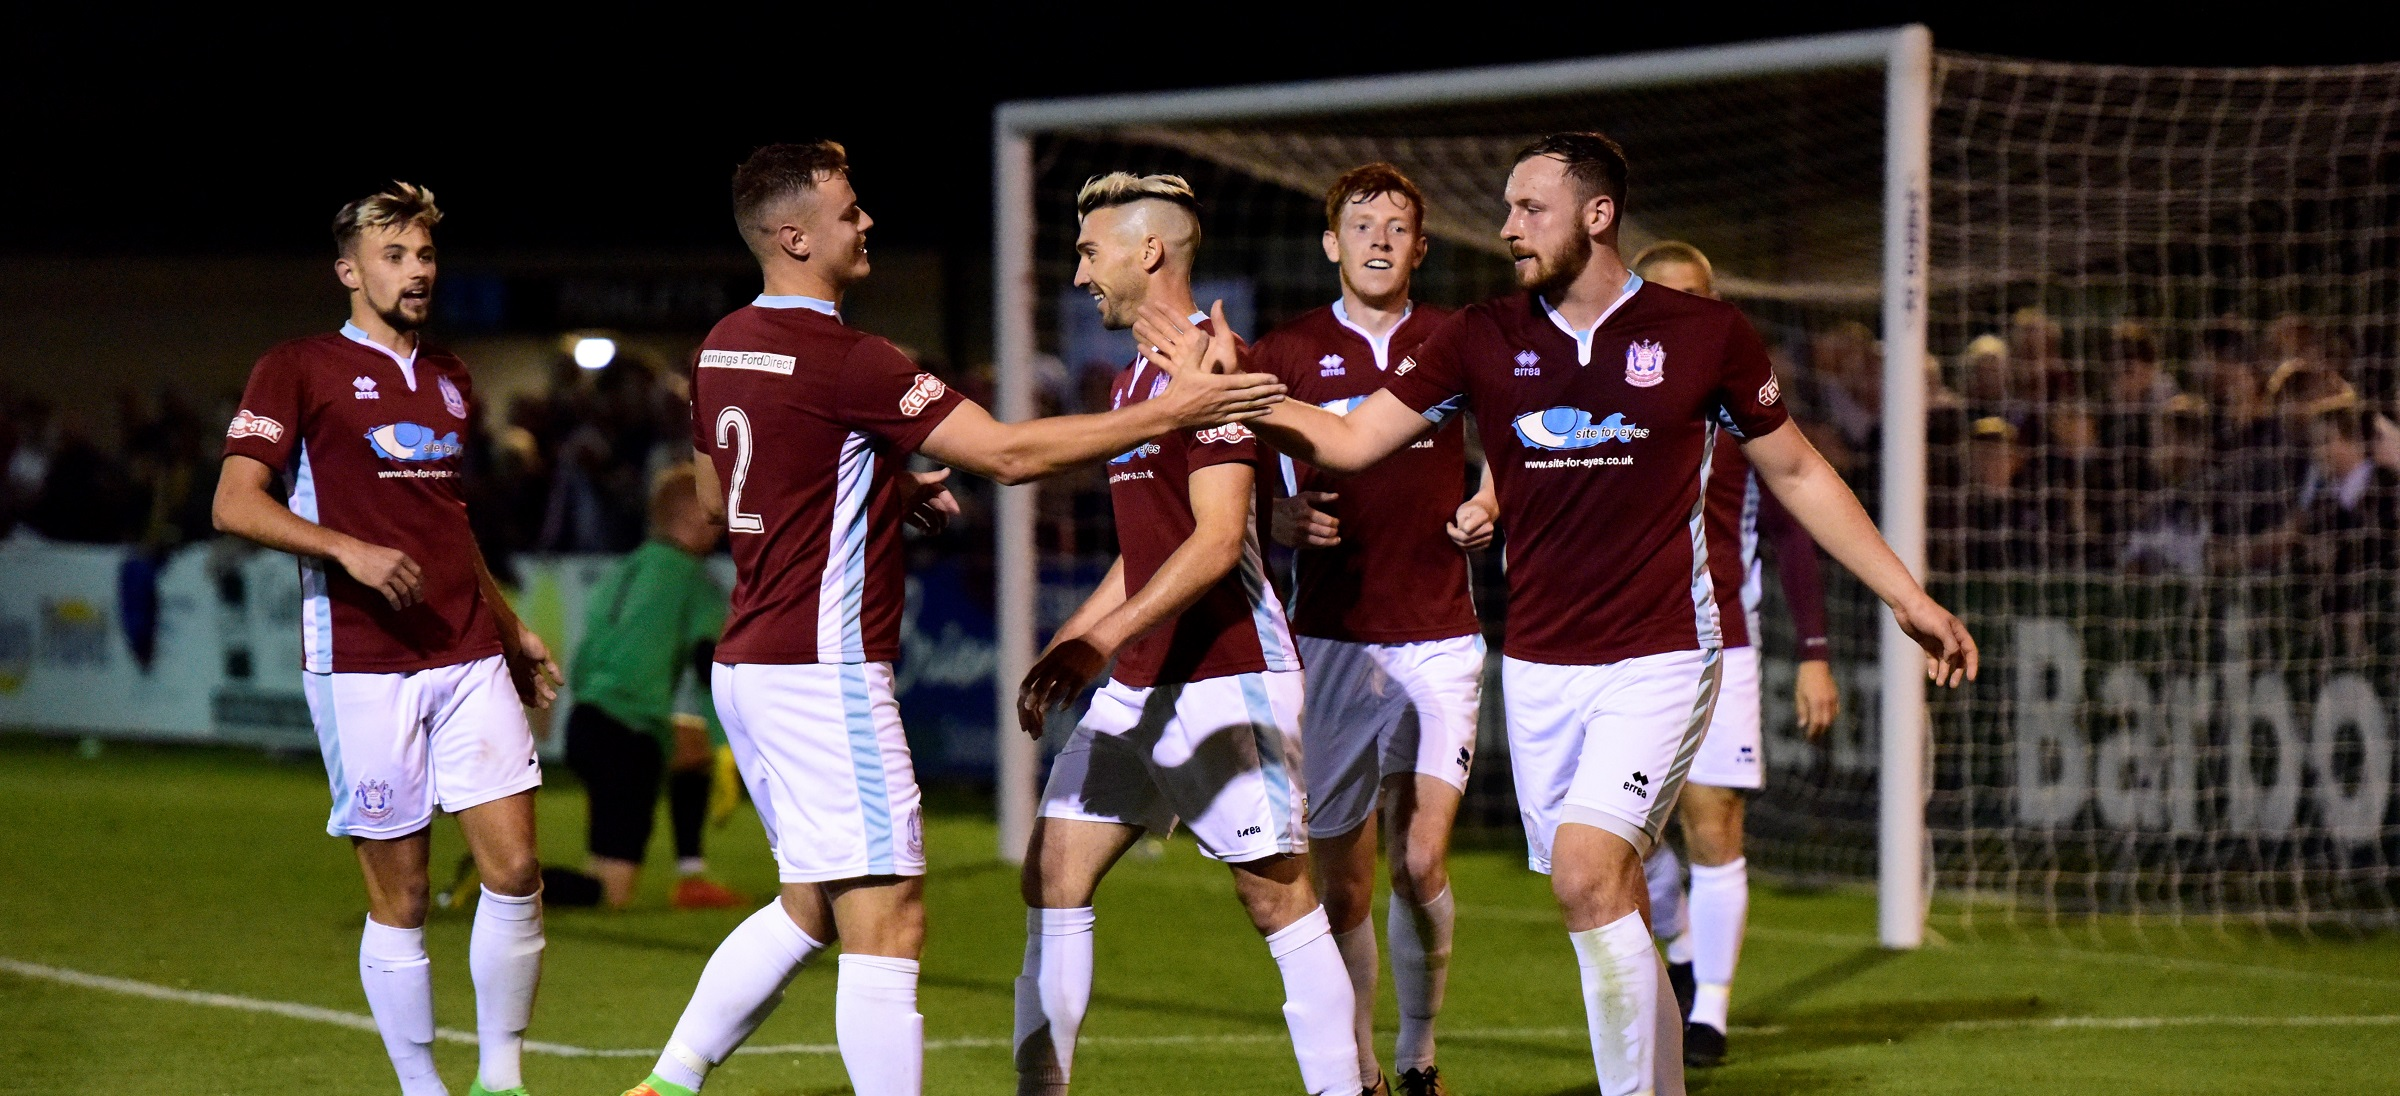 Ticket Alert: South Shields vs York City, Emirates FA Cup